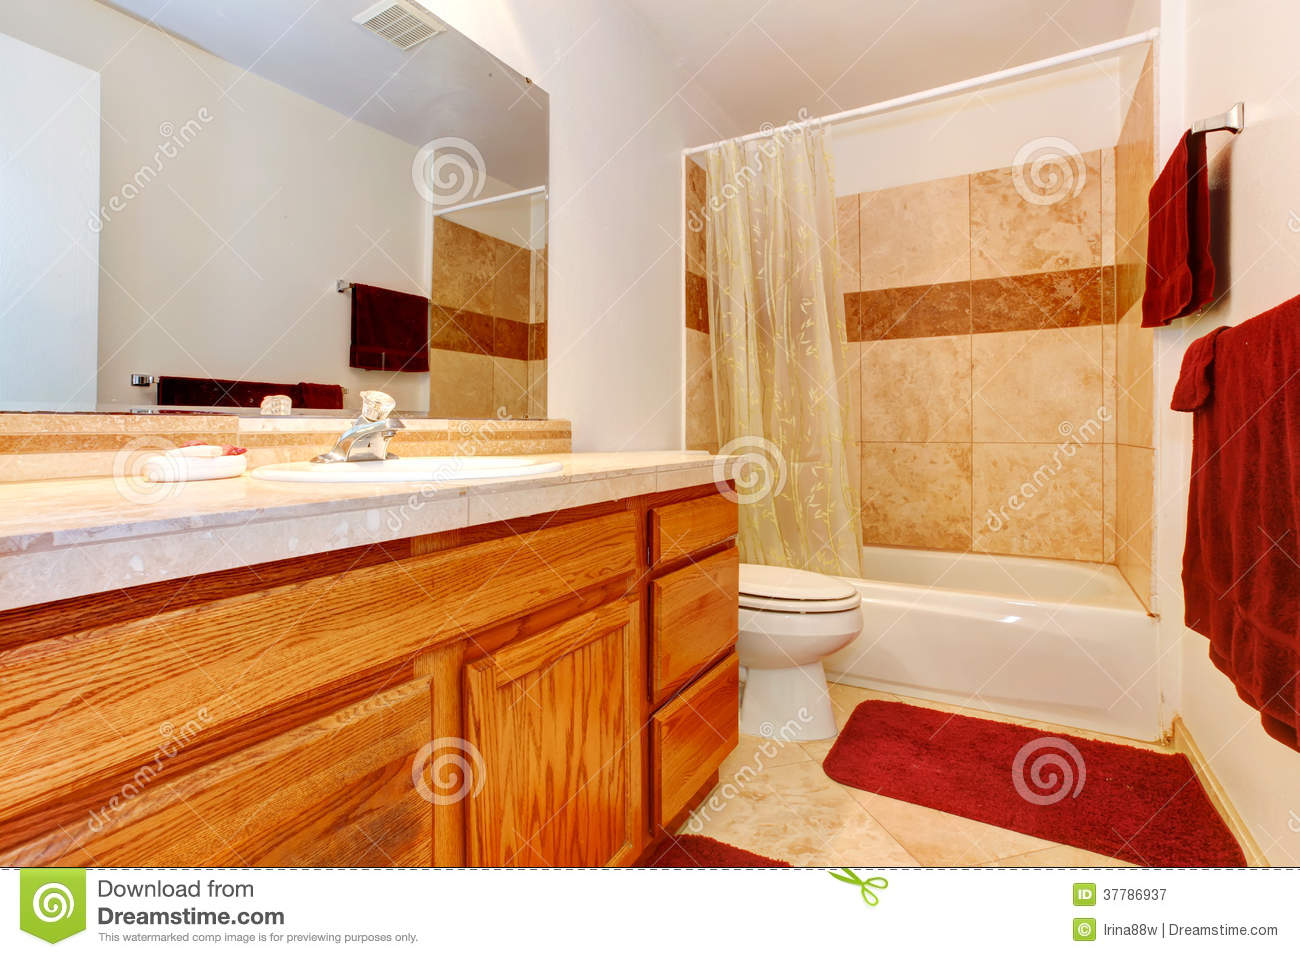 Warm Colors Bathroom With Red Towels And Rug Royalty Free